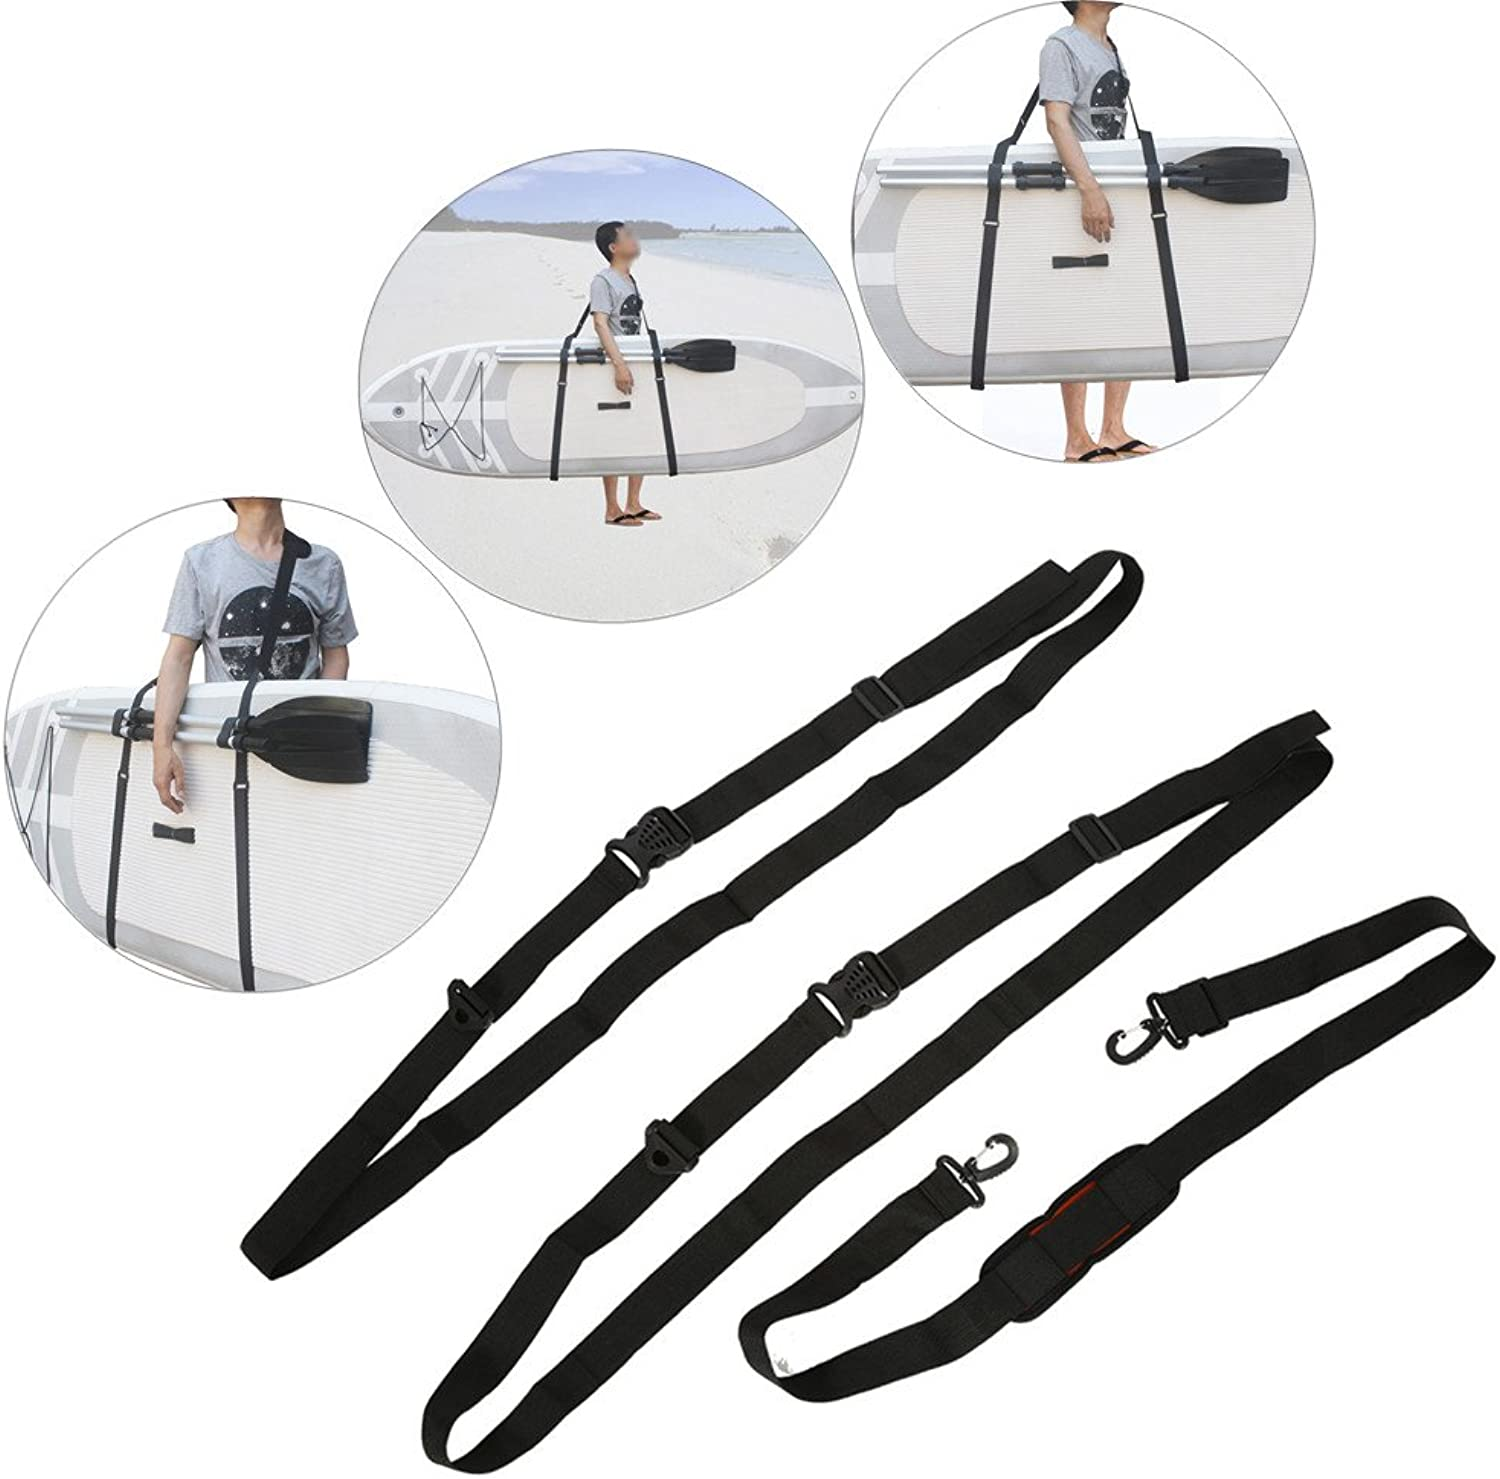 Stand Up Surfboard Straps  Surfboard Paddleboard Carrier Shoulder Carry Strap Easy Carry Storage Strap Shoulder Sling  Longboard Carry Strap Adjustable Board Strap